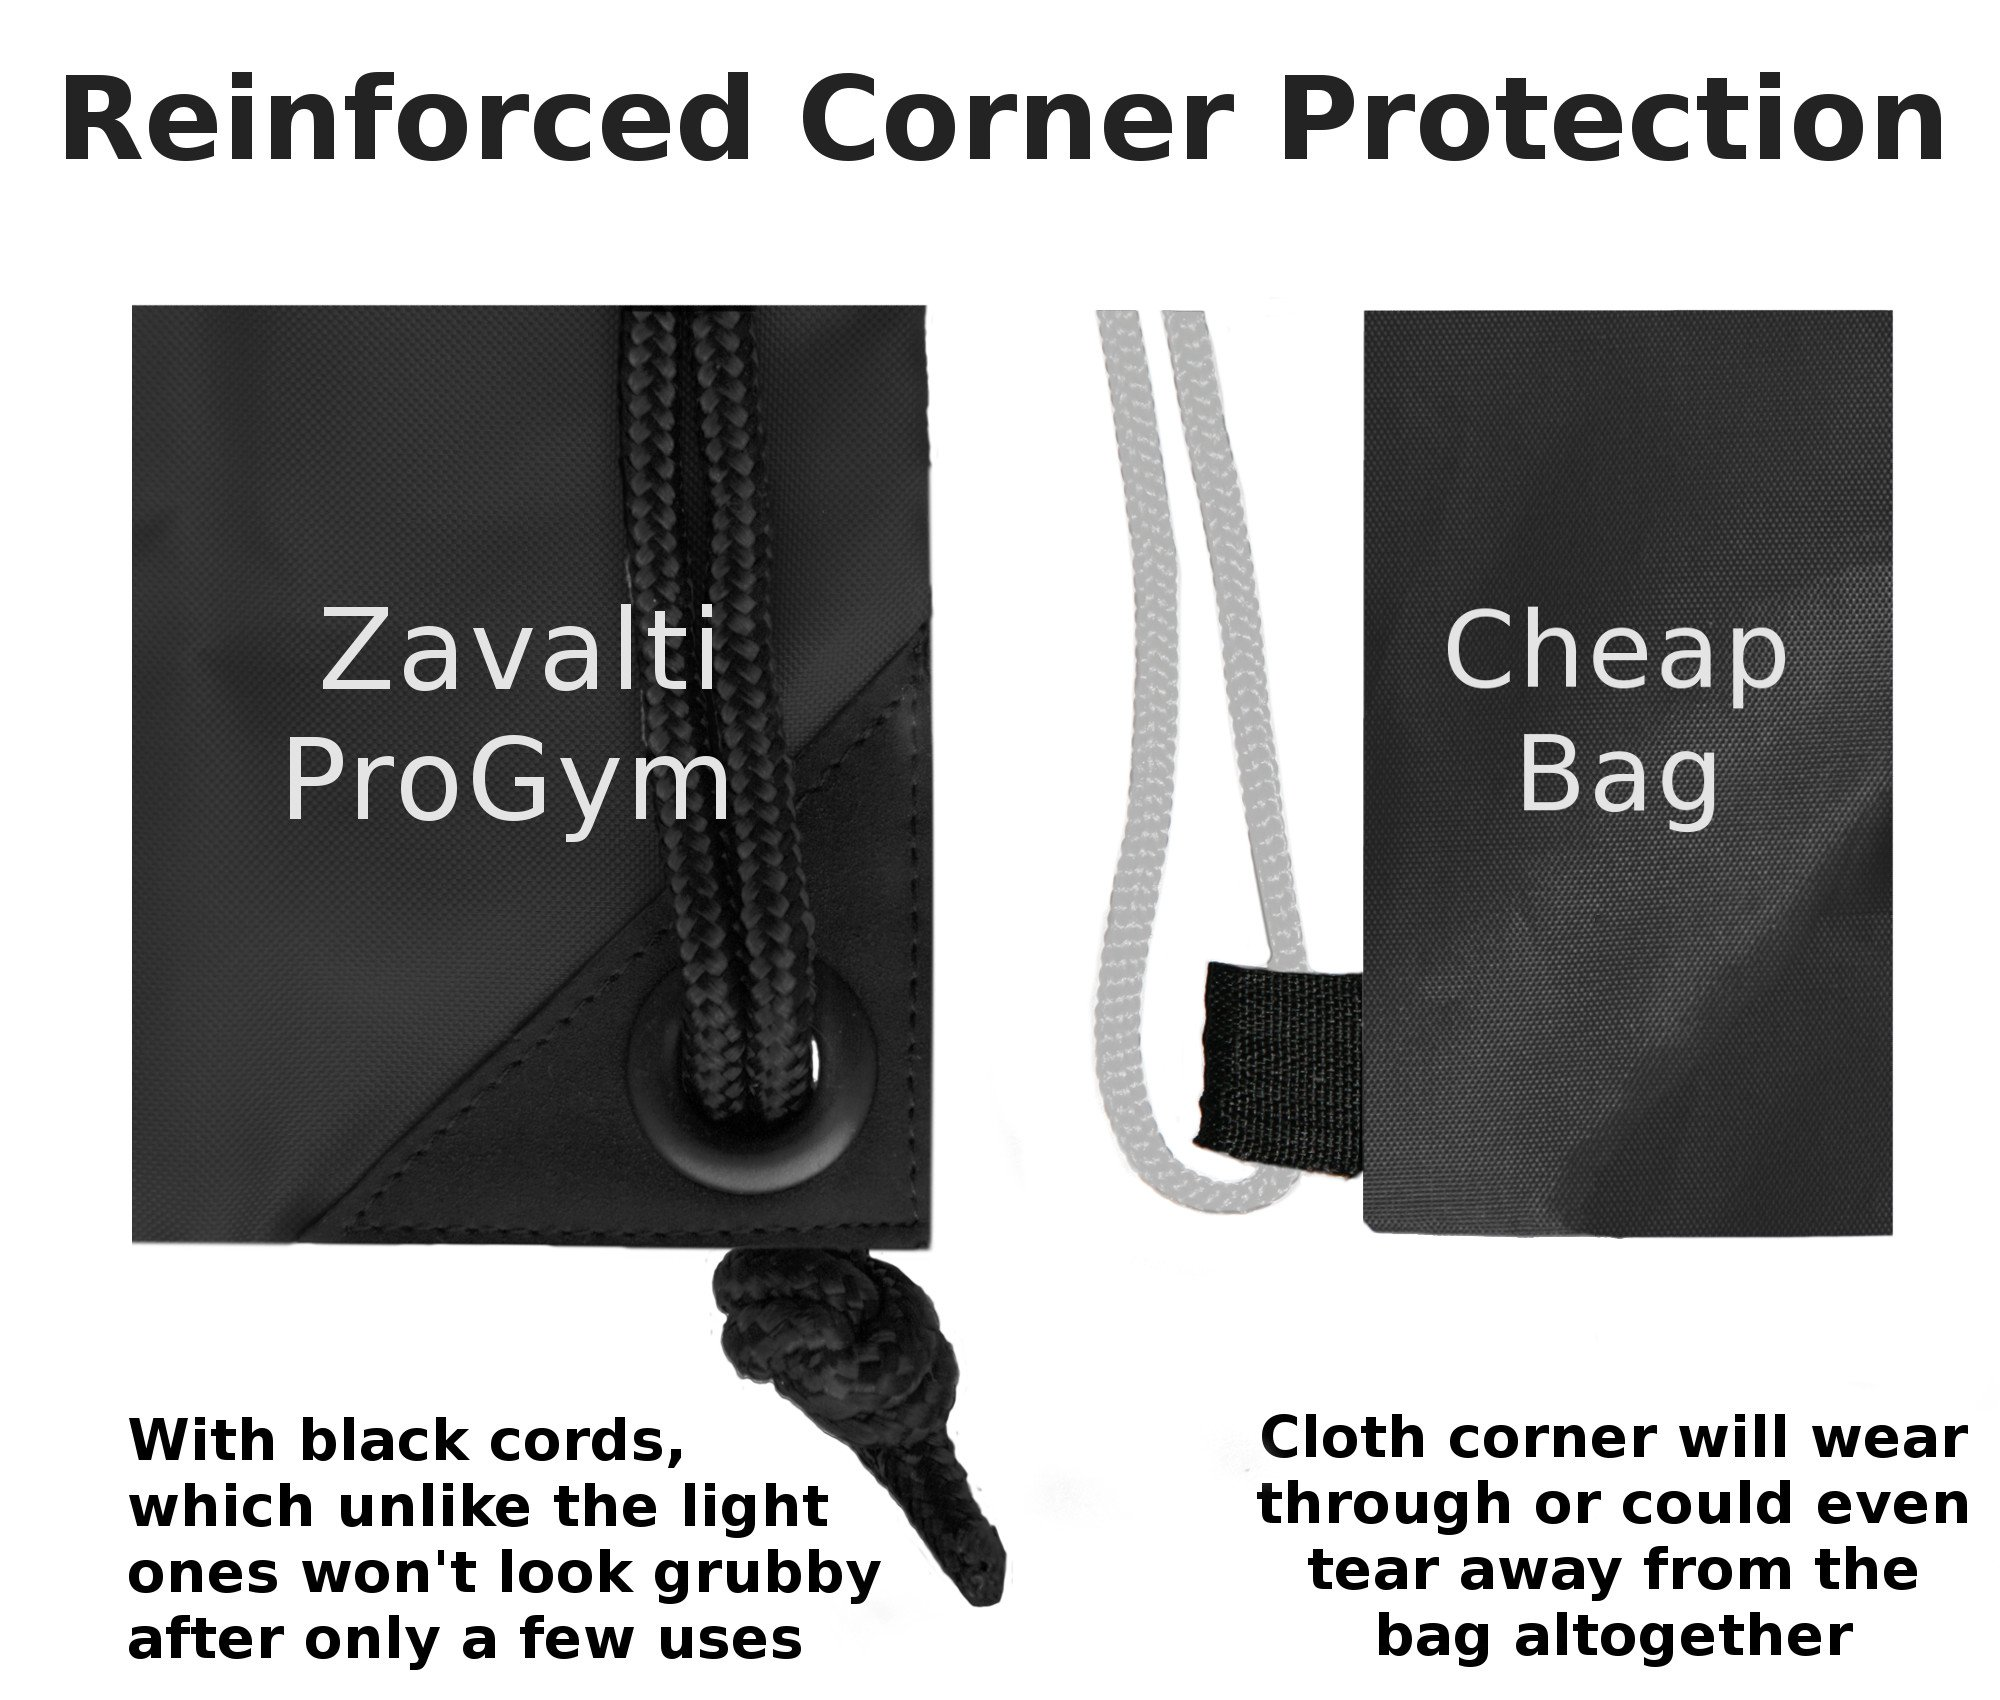 261097f2ad Very Strong Top Quality Drawstring Backpack Sackpack Gym bag for Adults  Children. Best School Kids PE Kit Bag with No Logo